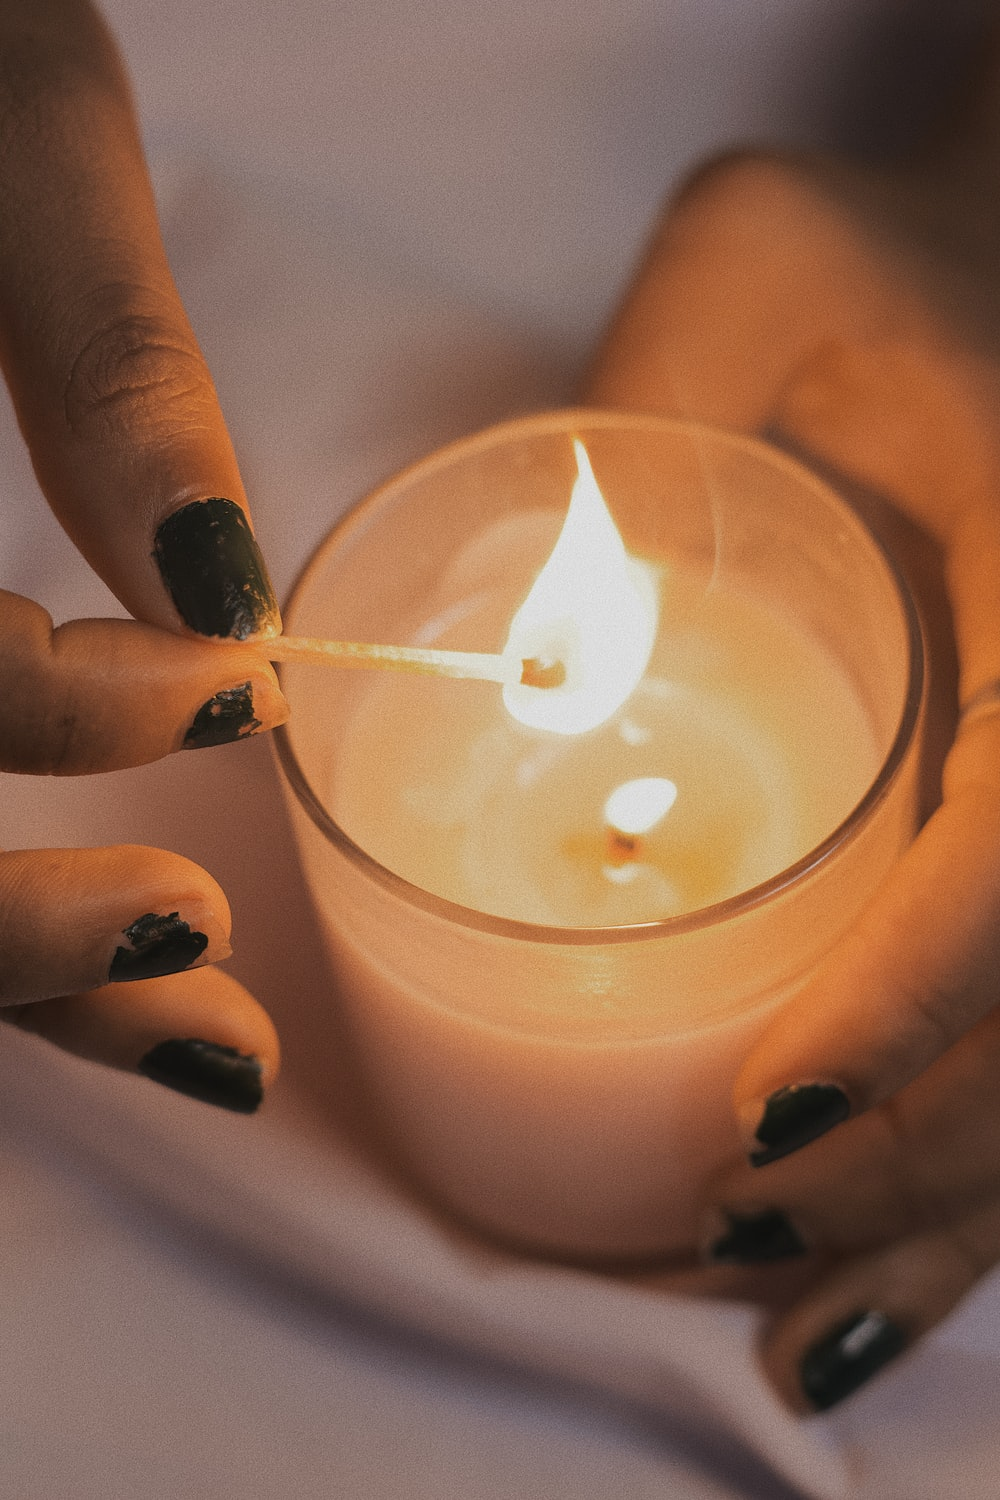 person holding lighted candle stick